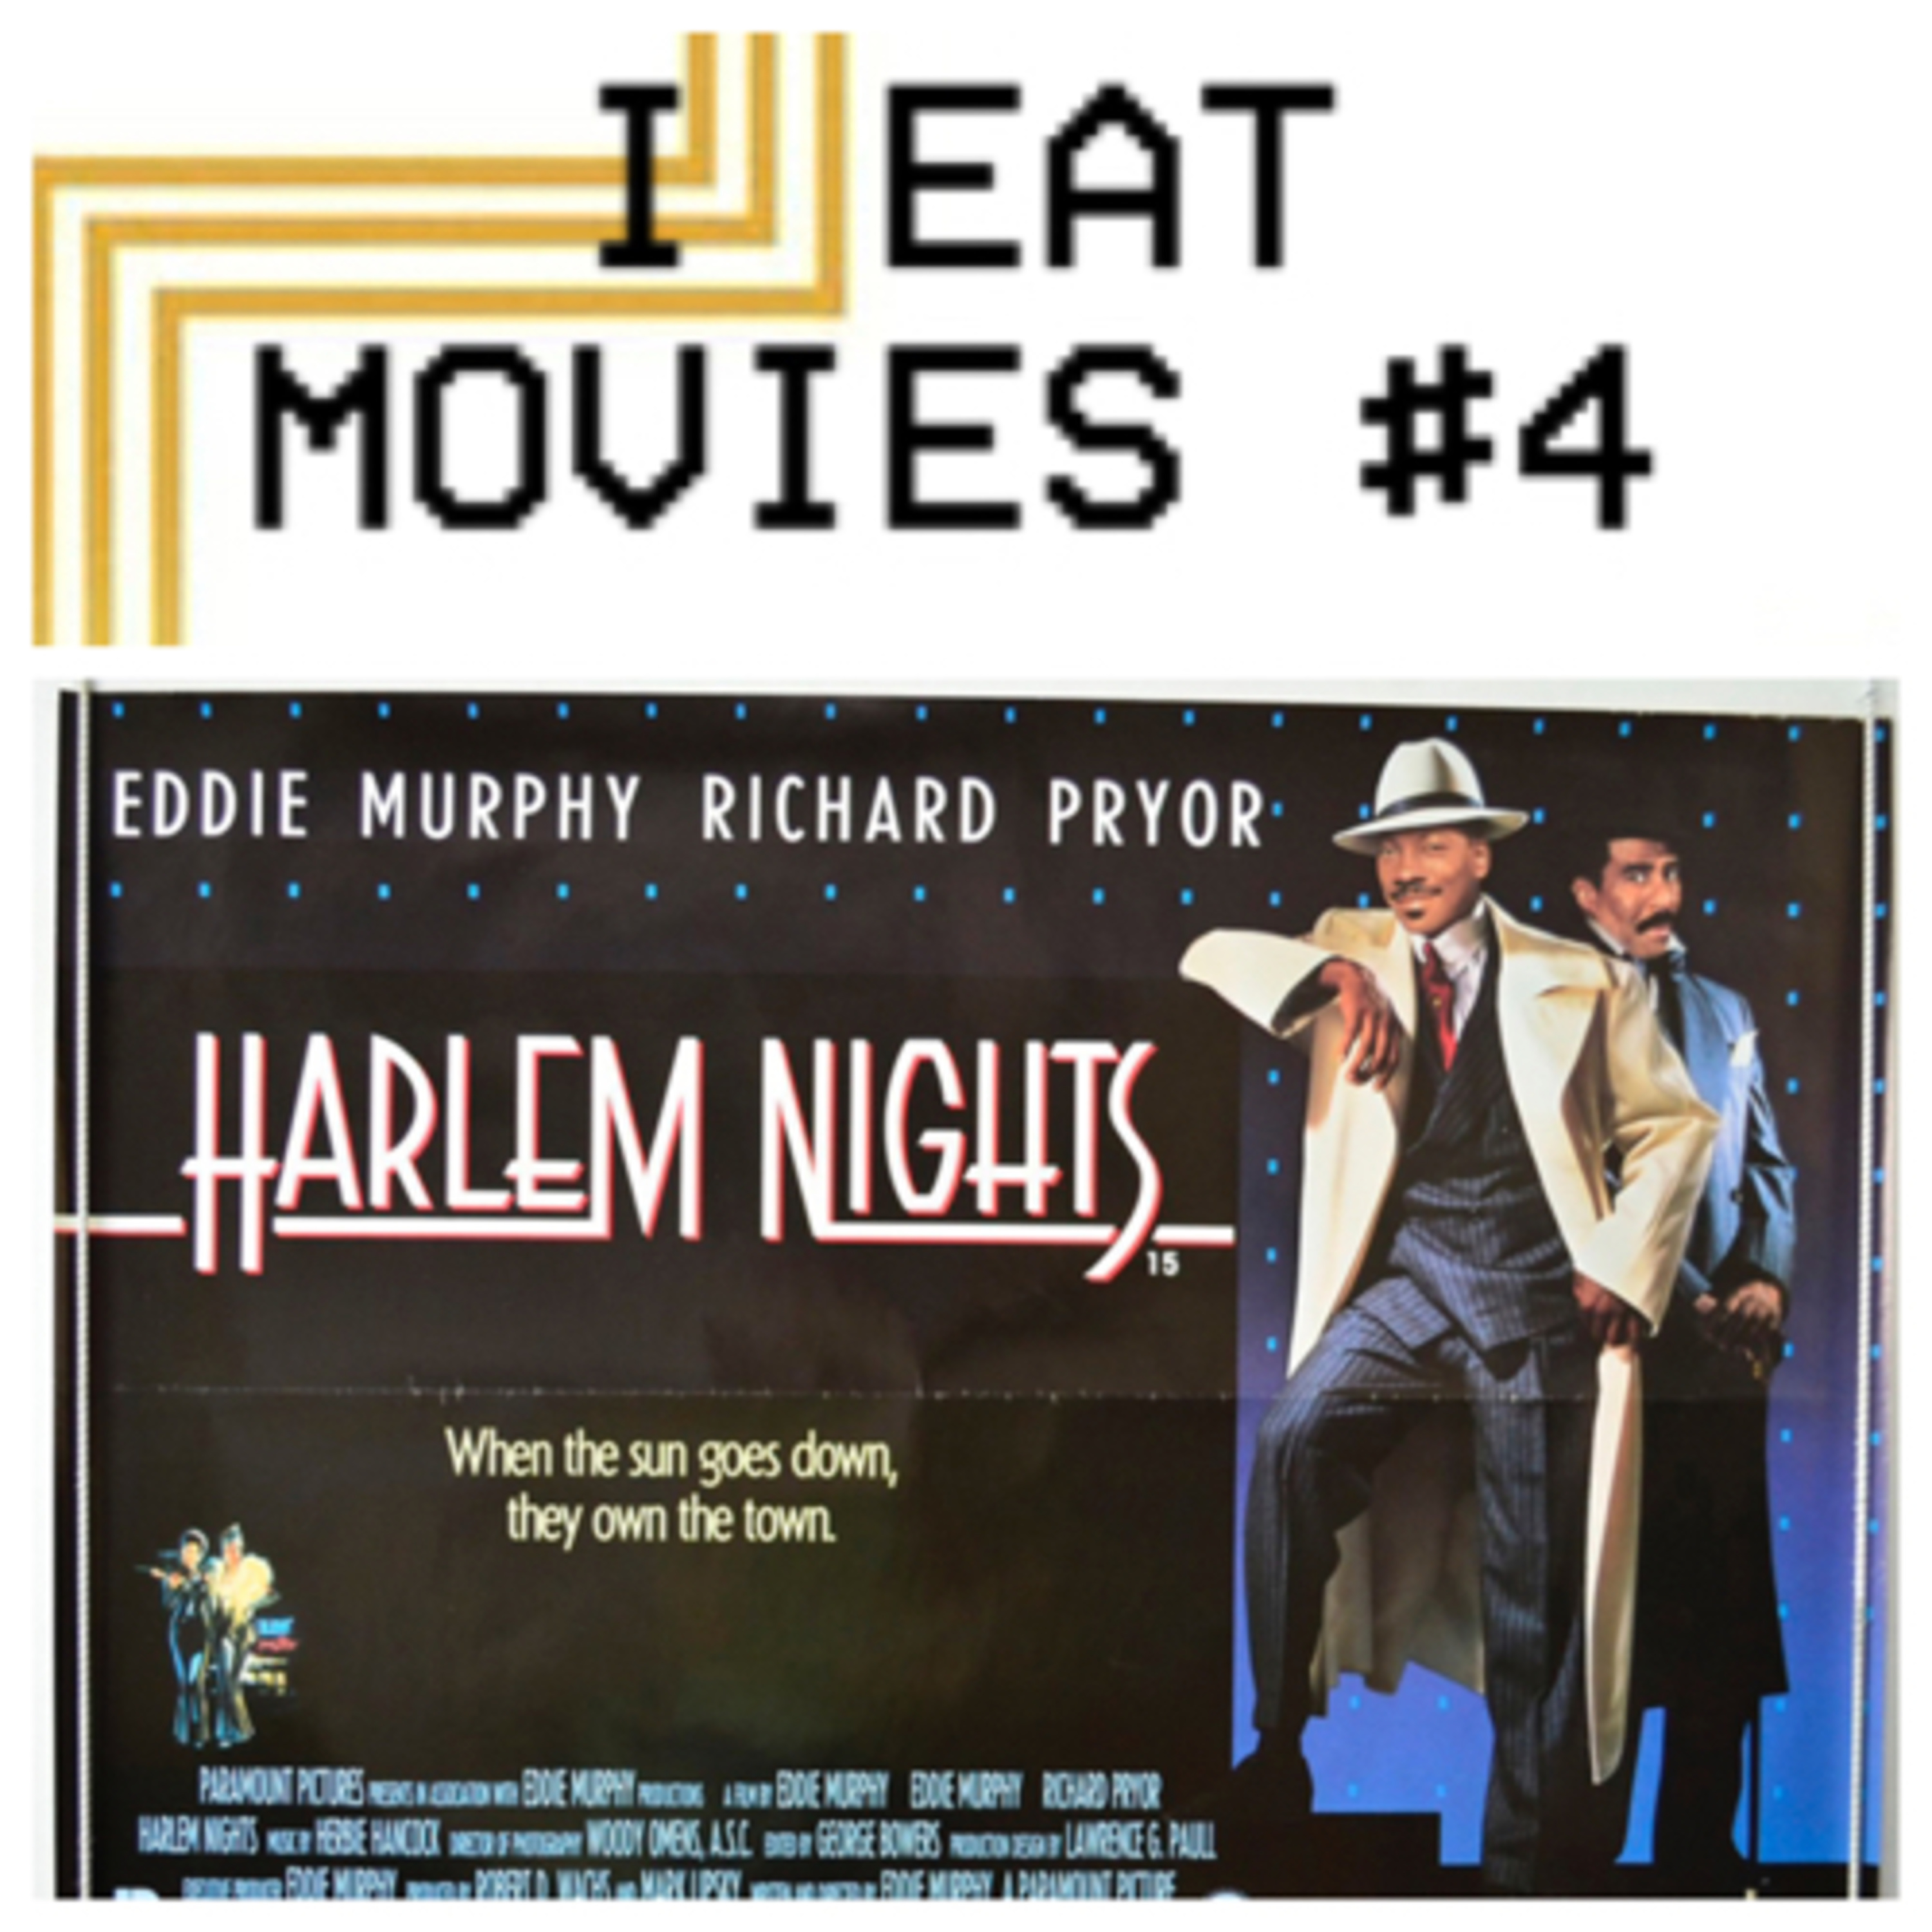 I Eat Movies #4: Mike's First Time - Harlem Nights (1989)